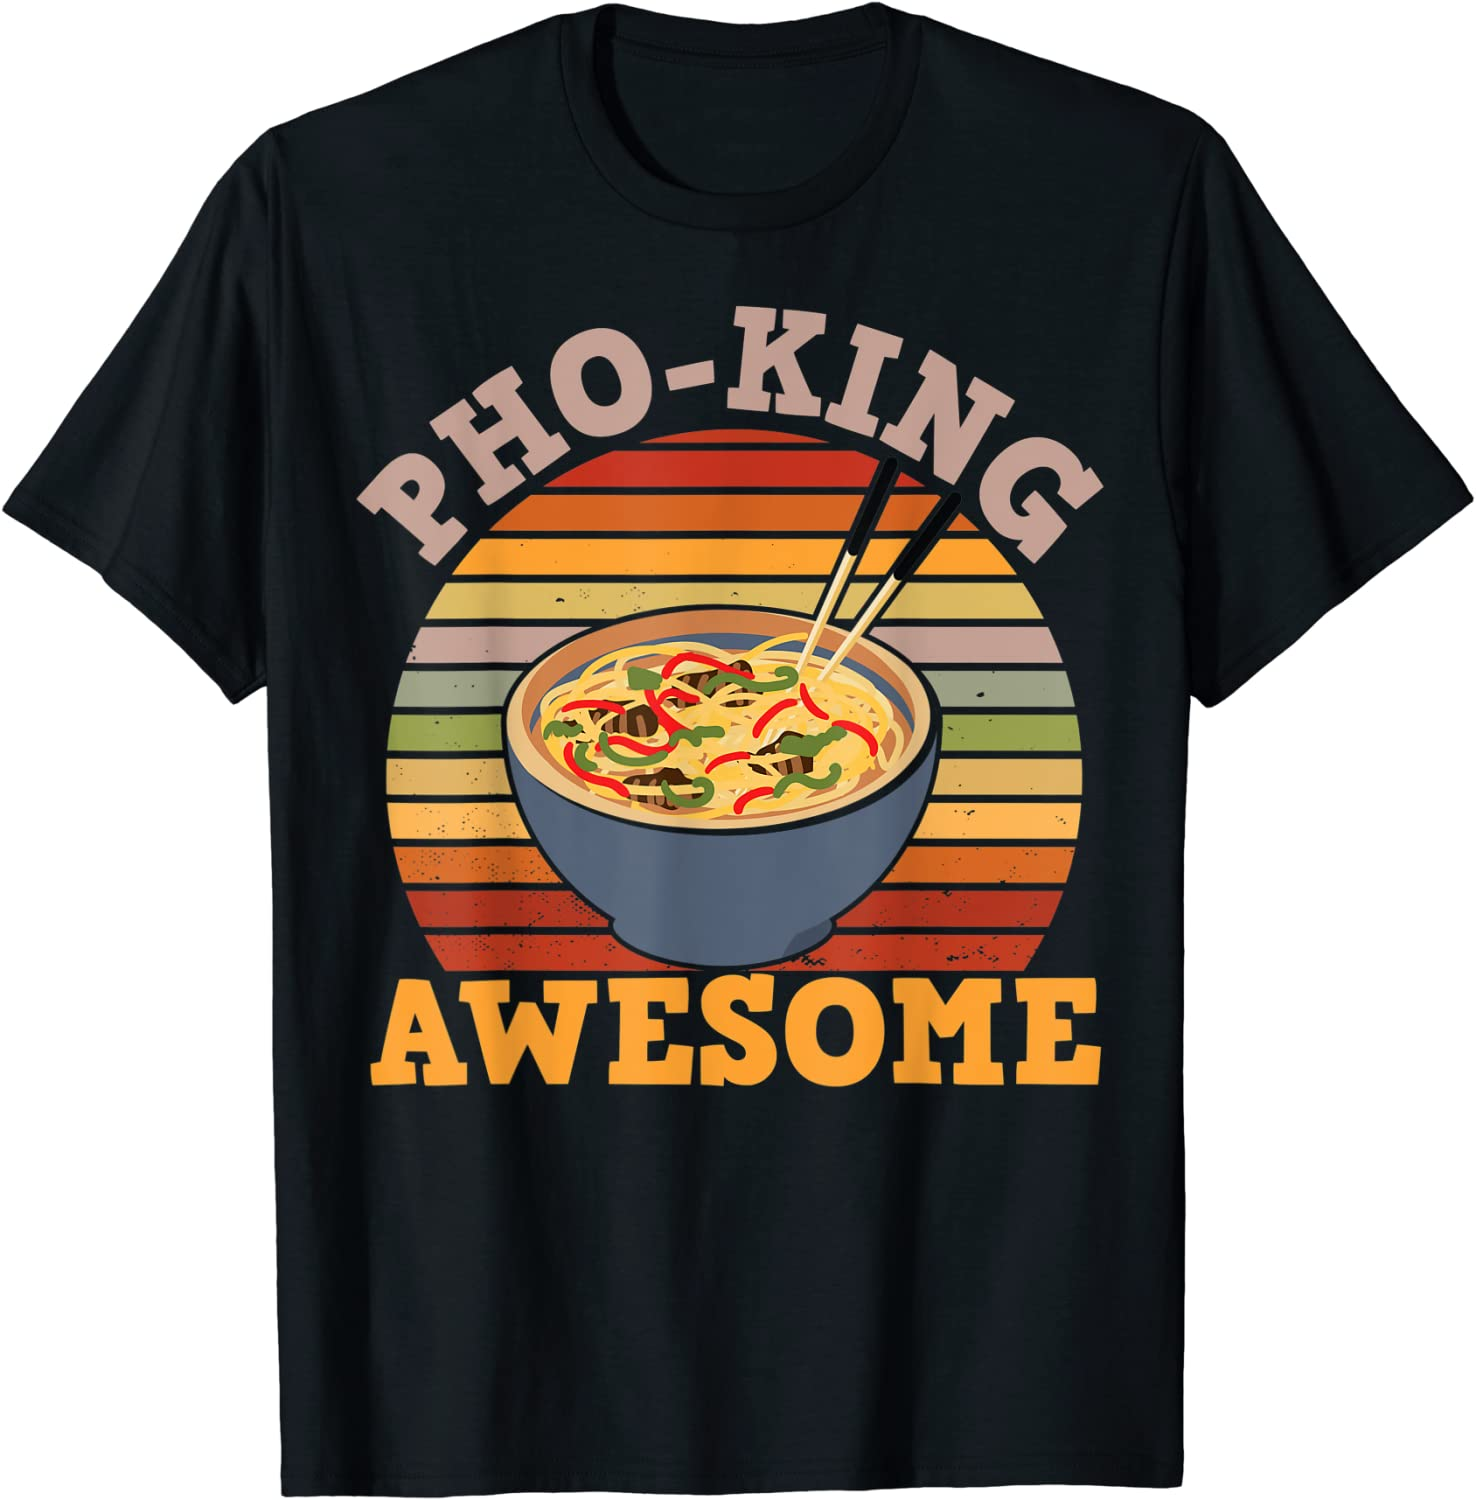 Vietnamese Food Humor Pho King Awesome for Asian Food Fans T-Shirt